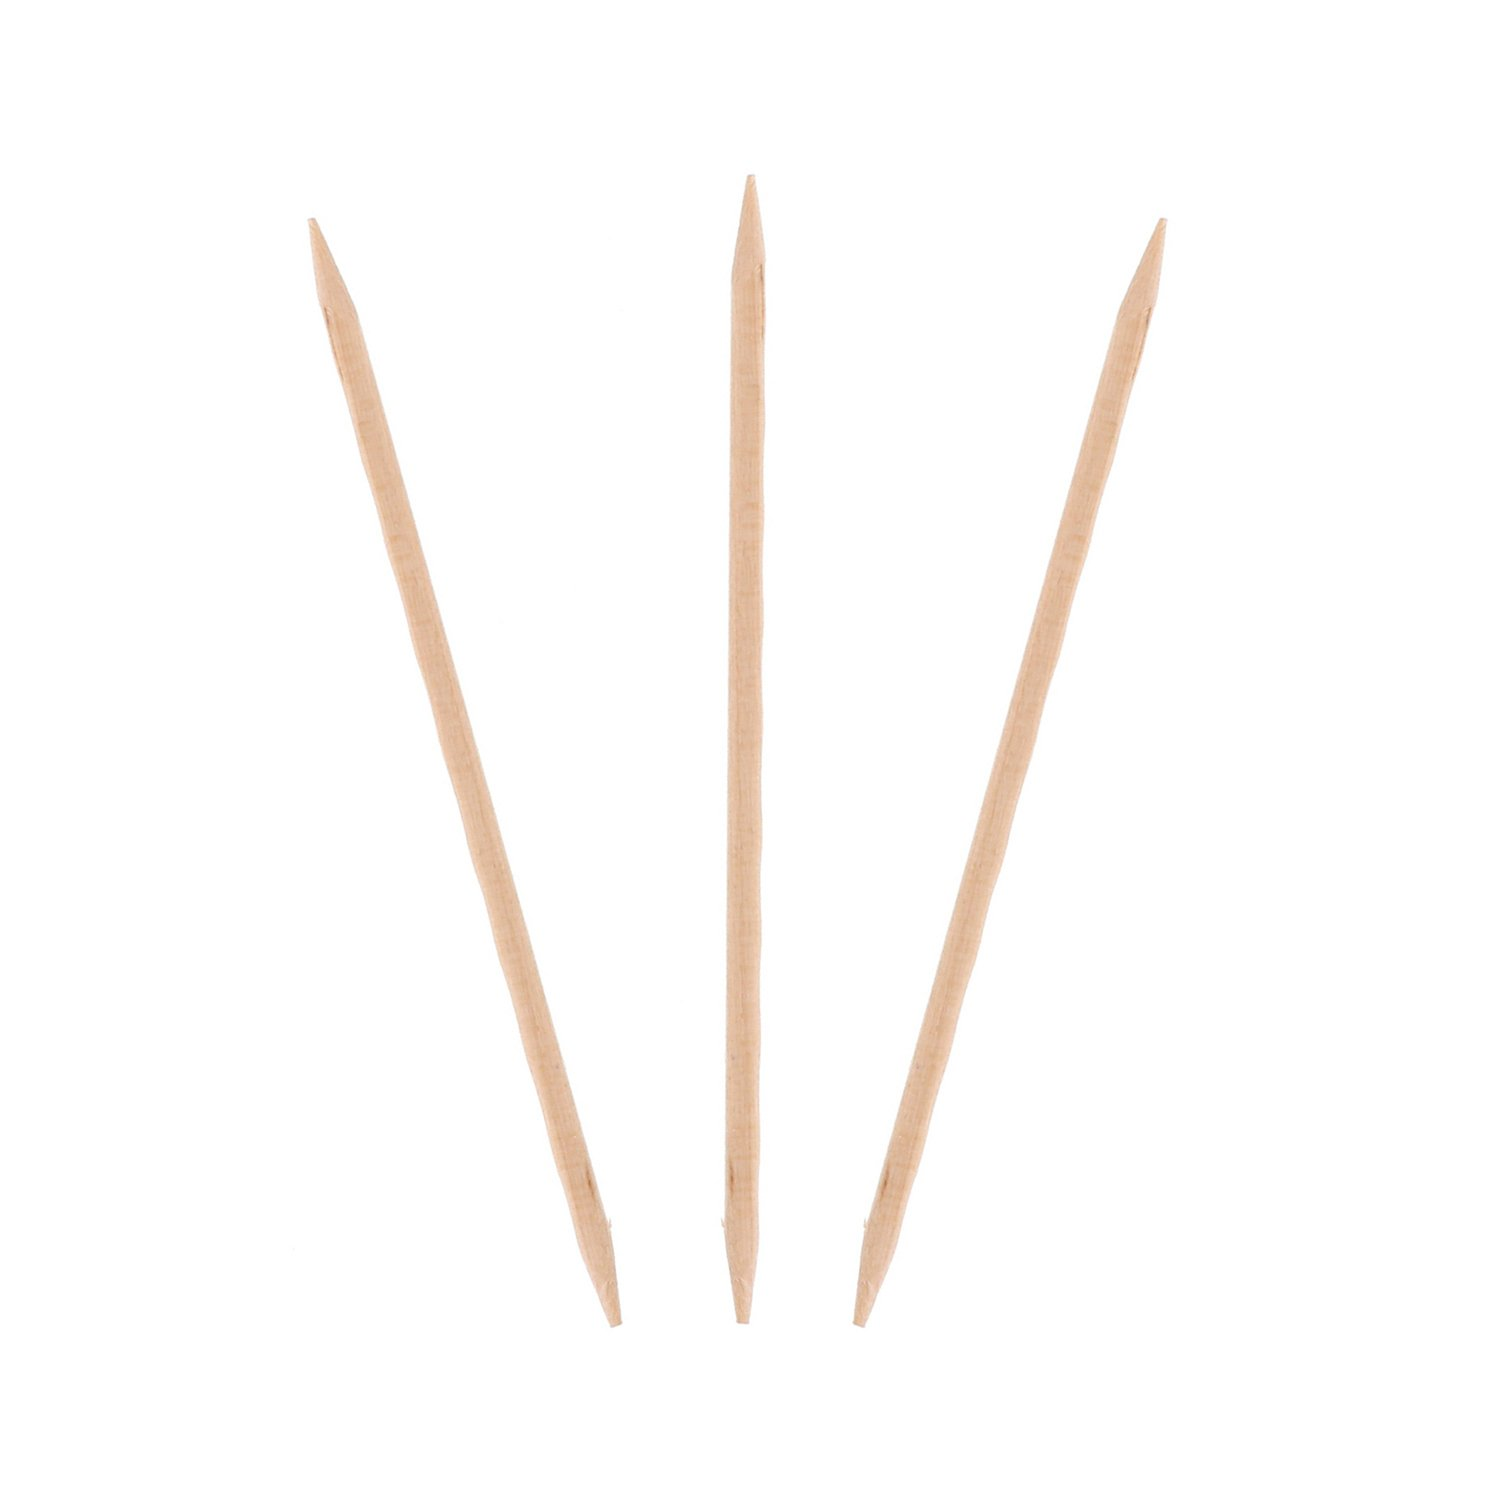 Royal R820SQ Square Wood Toothpicks, 2 3/4'', Natural, 800 Per Box (Case of 24 Boxes) by Royal